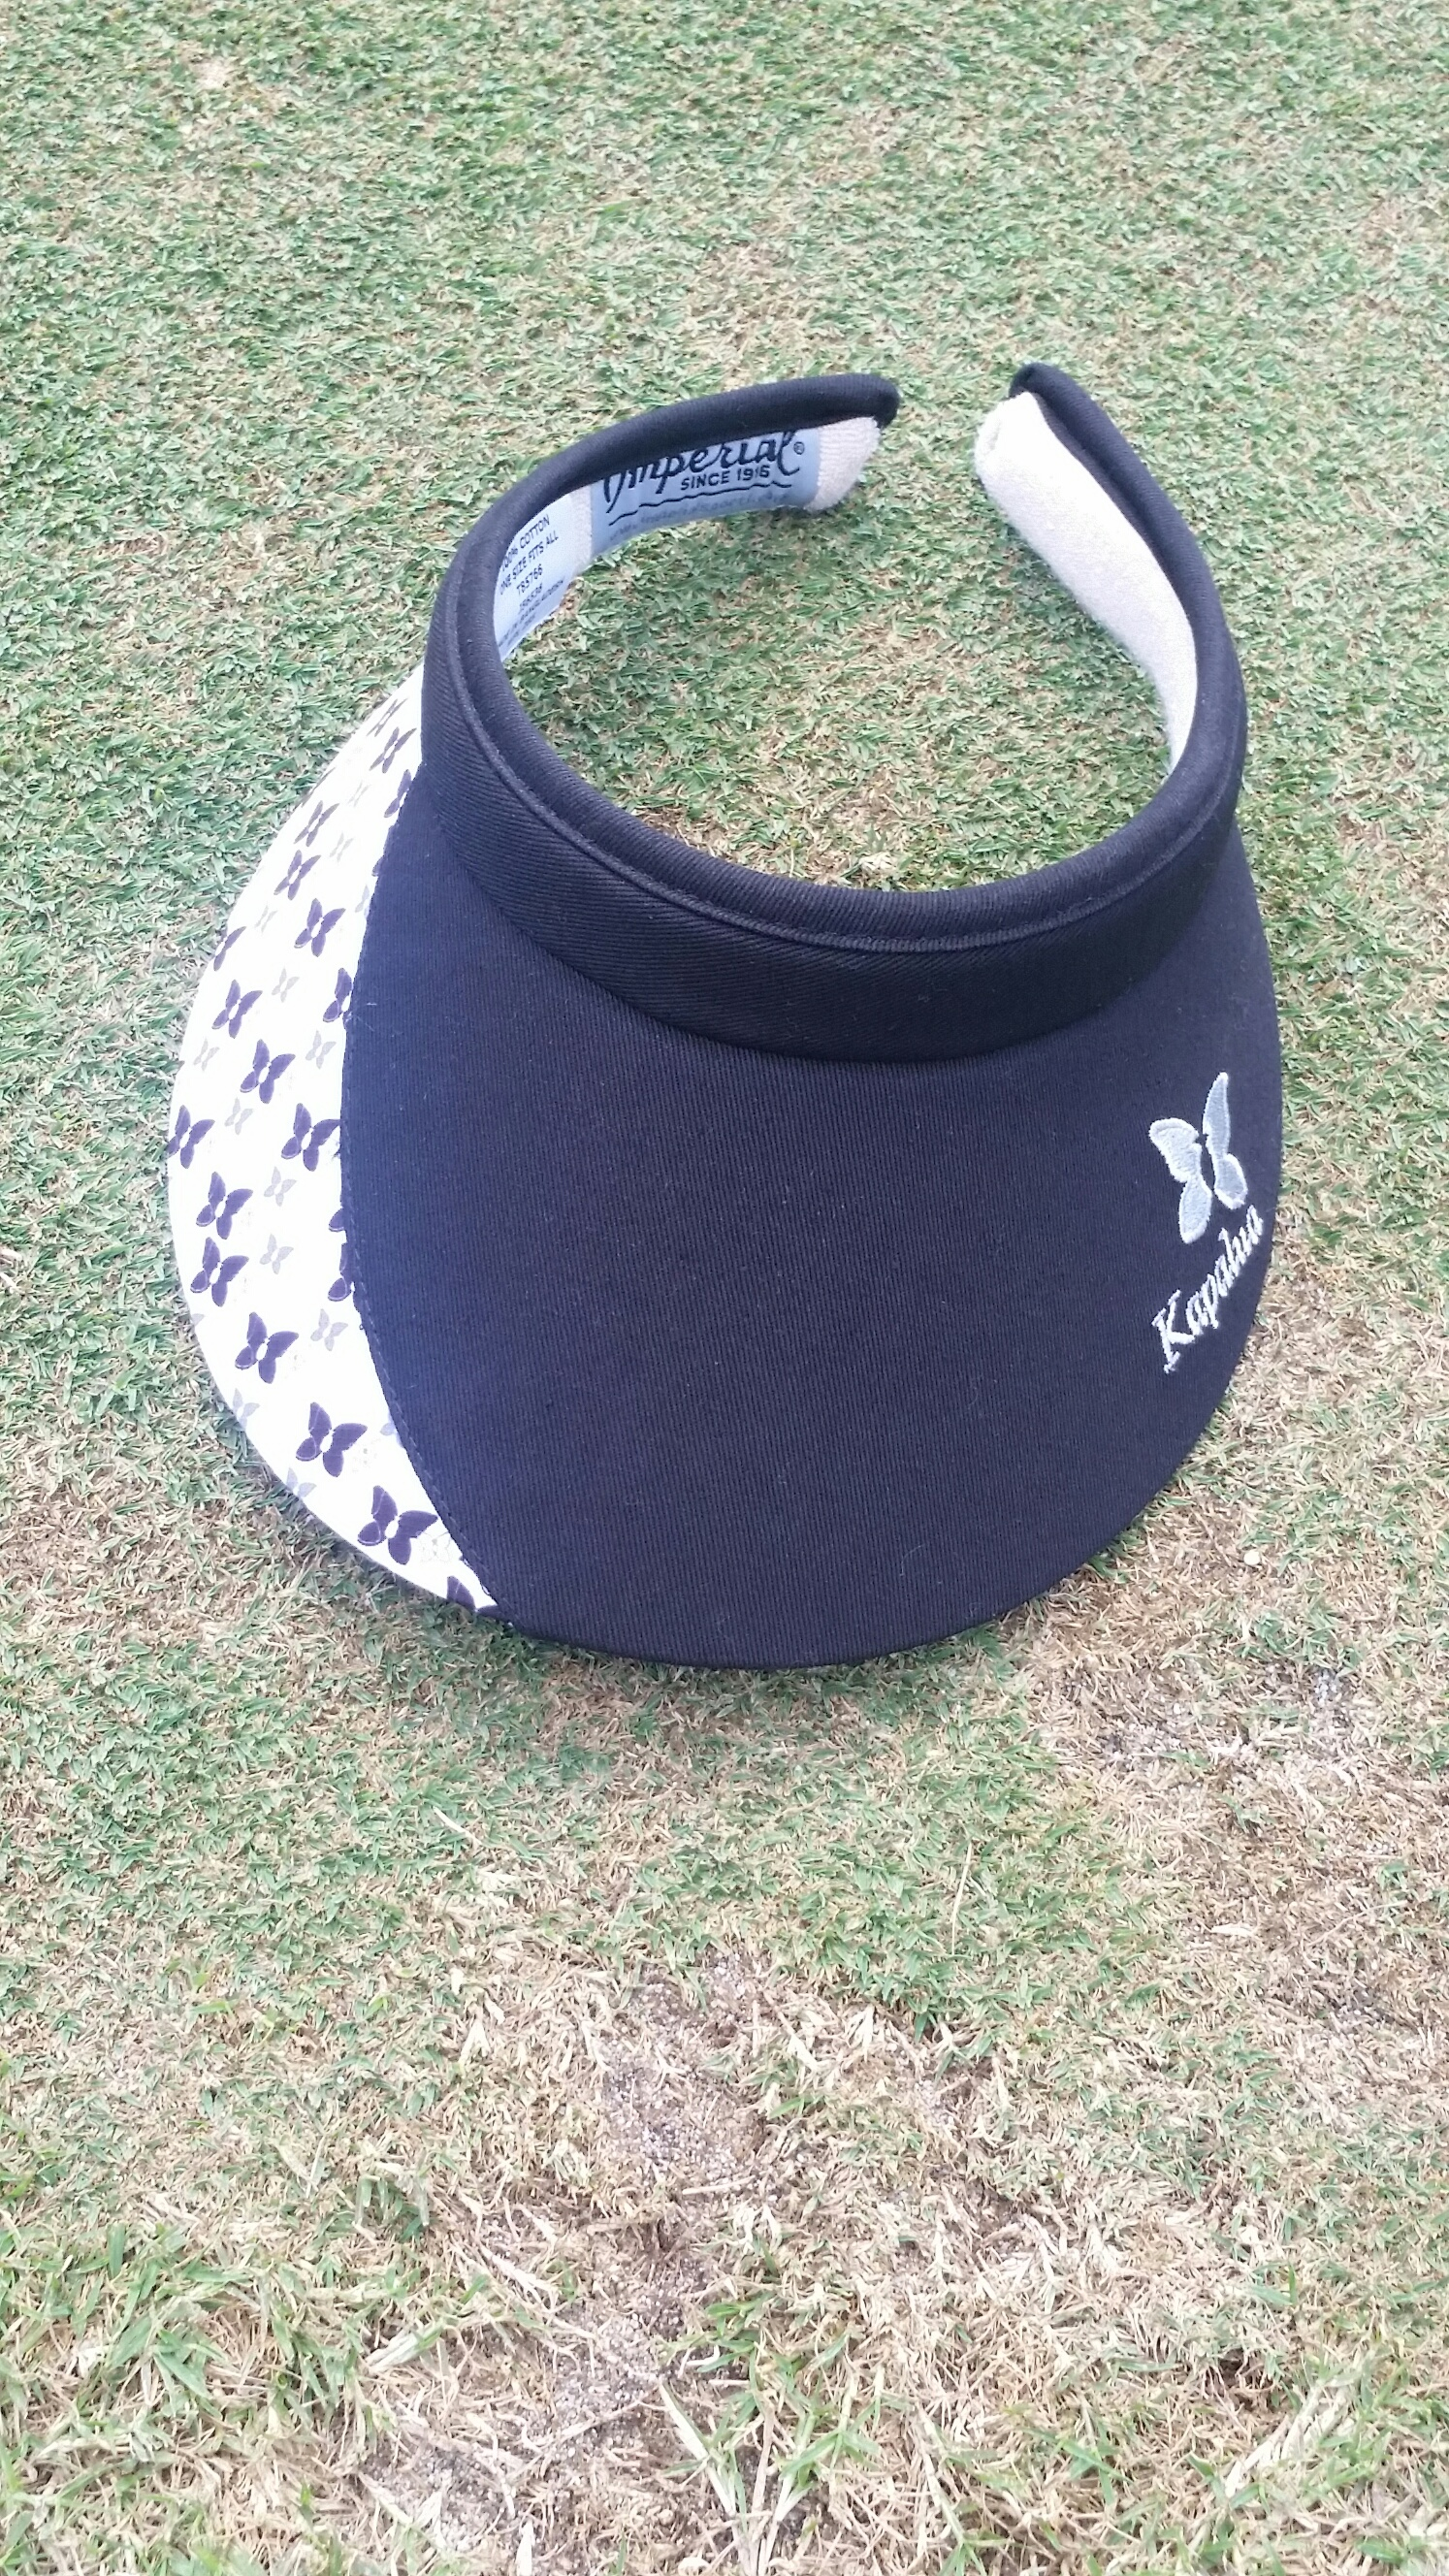 Womens Imperial Kapalua Visor - Black with Butterfly pattern